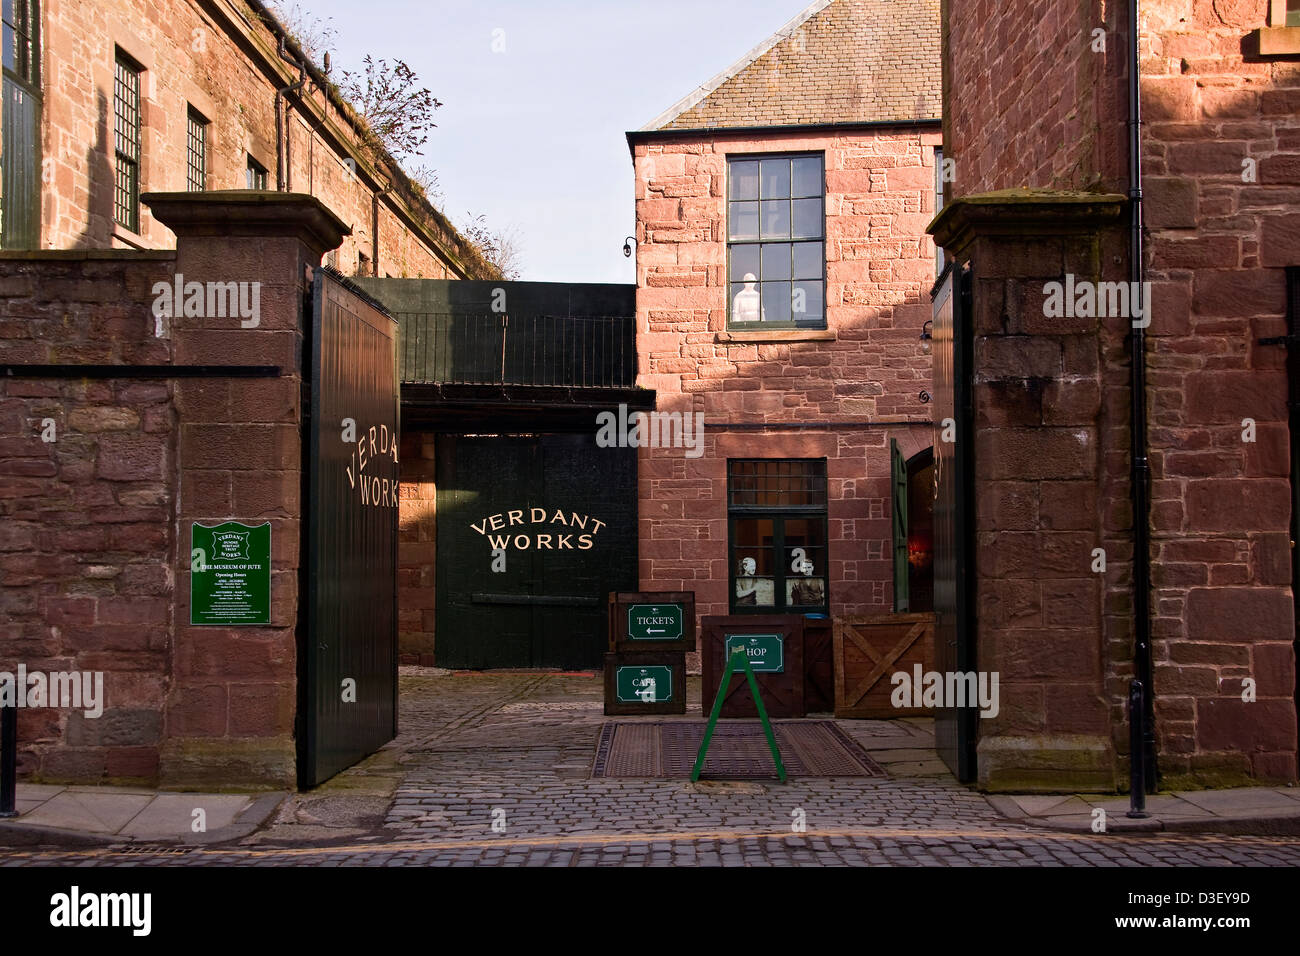 The Dundee Verdant Works was given Category A listed building status by Historic Scotland in 1987,UK - Stock Image